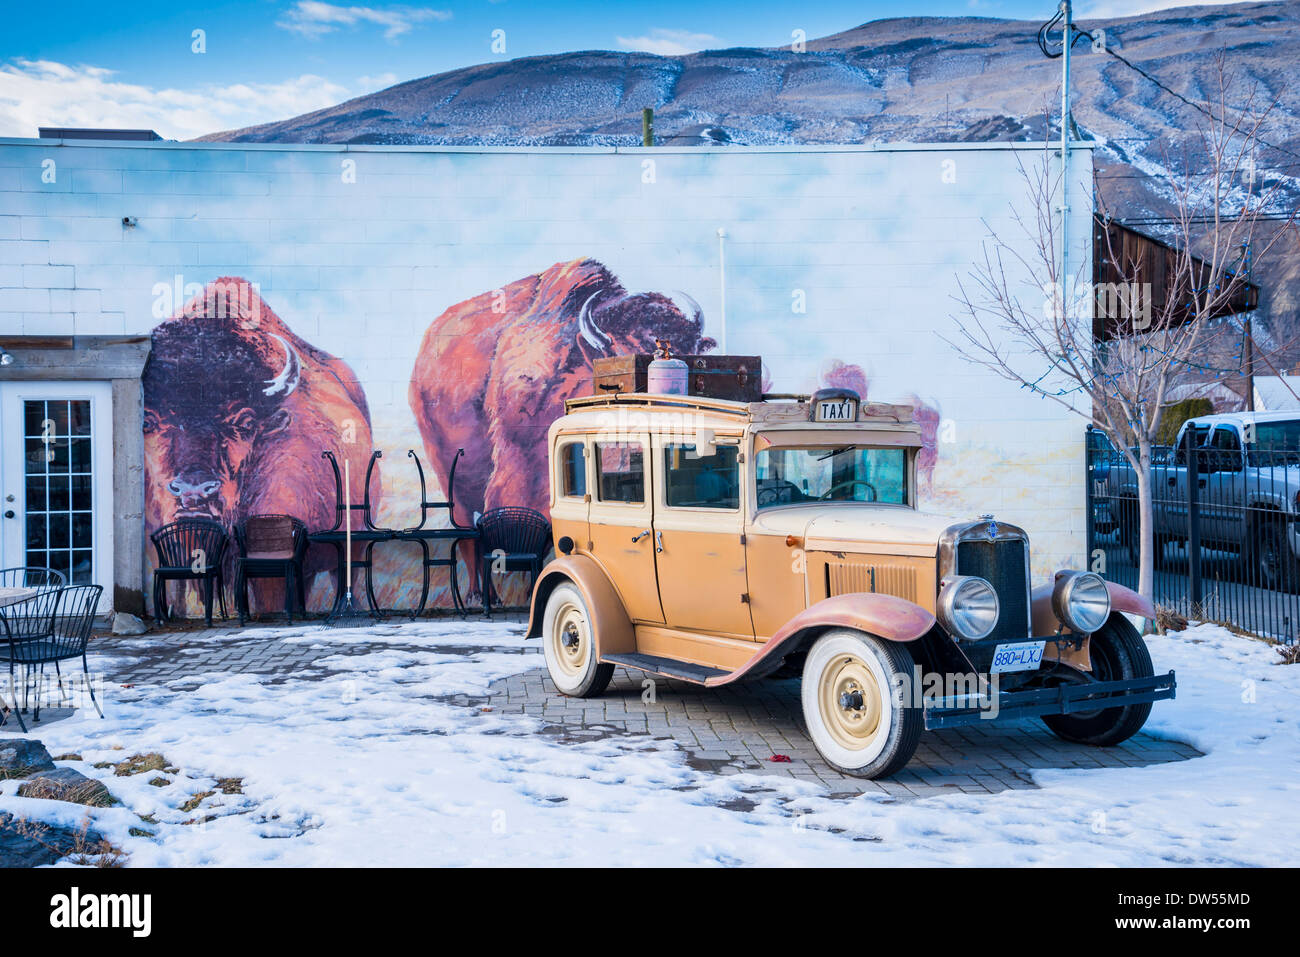 Bison mural and vintage Chevrolet taxi cab, Ashcroft, British Columbia, Canada - Stock Image